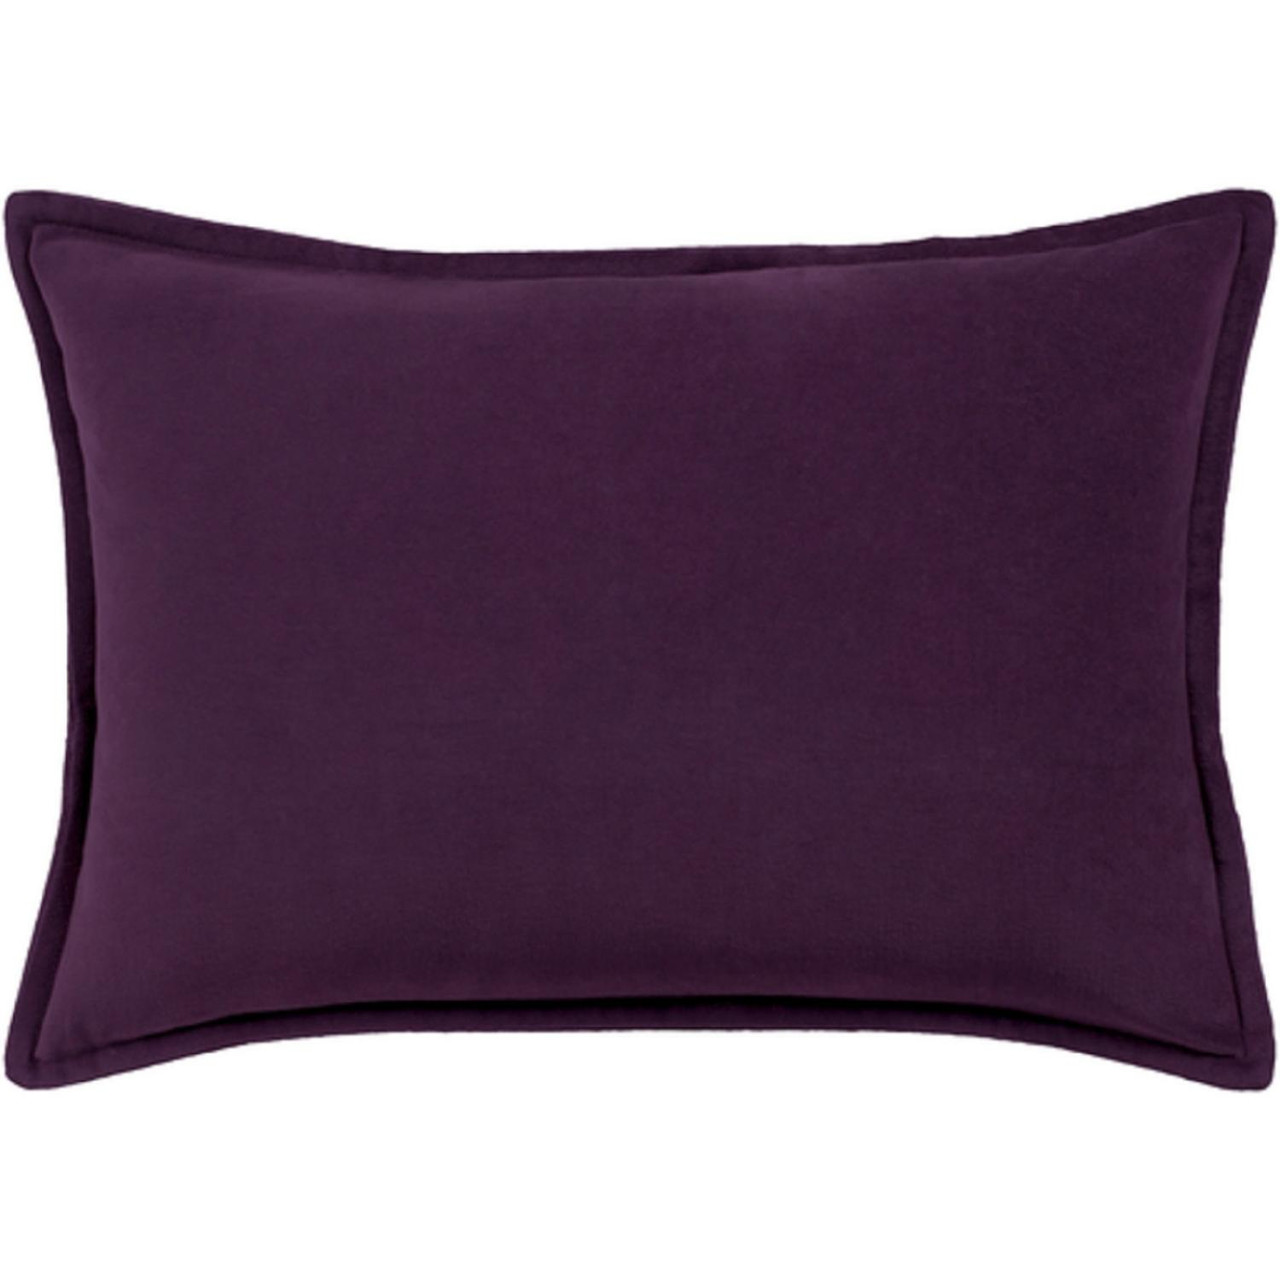 19 Eggplant Purple Rectangular Throw Pillow Cover With Flange Edge Christmas Central